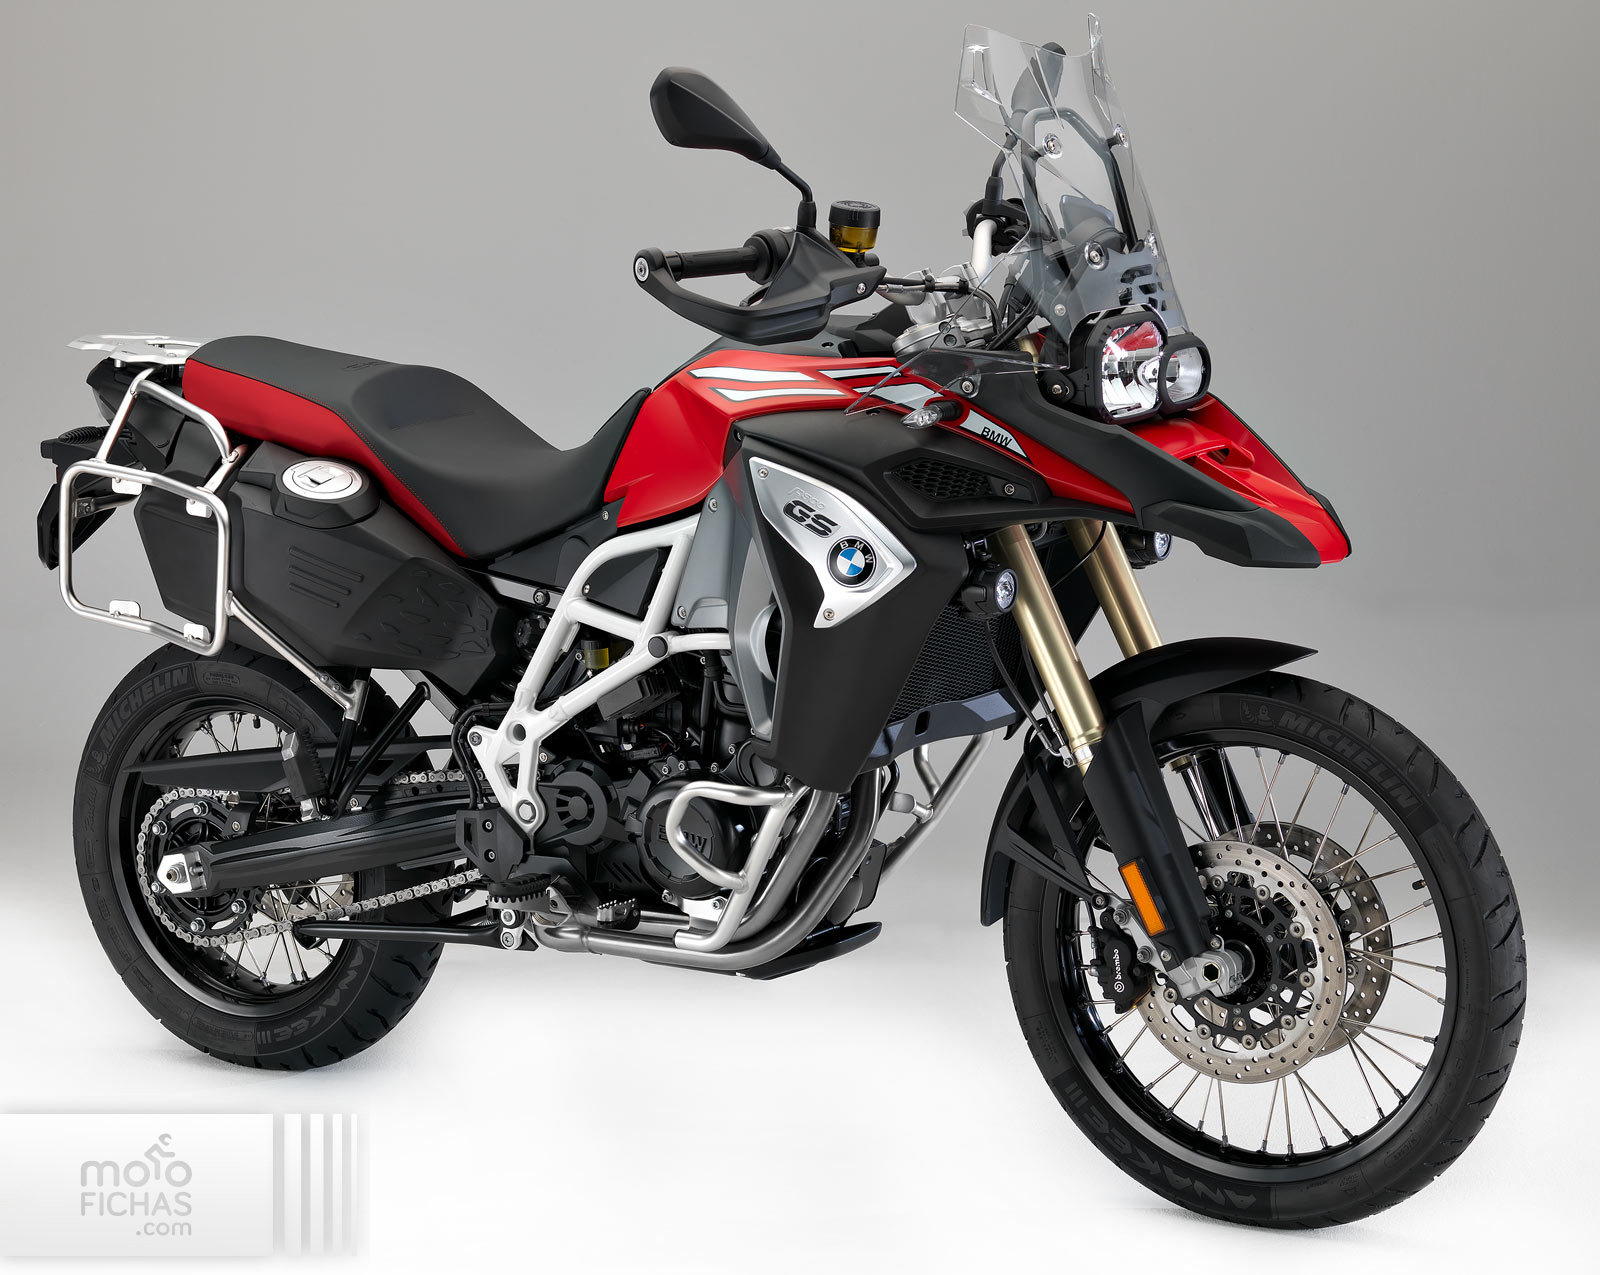 bmw f 800 gs adventure 2017 precio ficha opiniones y ofertas. Black Bedroom Furniture Sets. Home Design Ideas